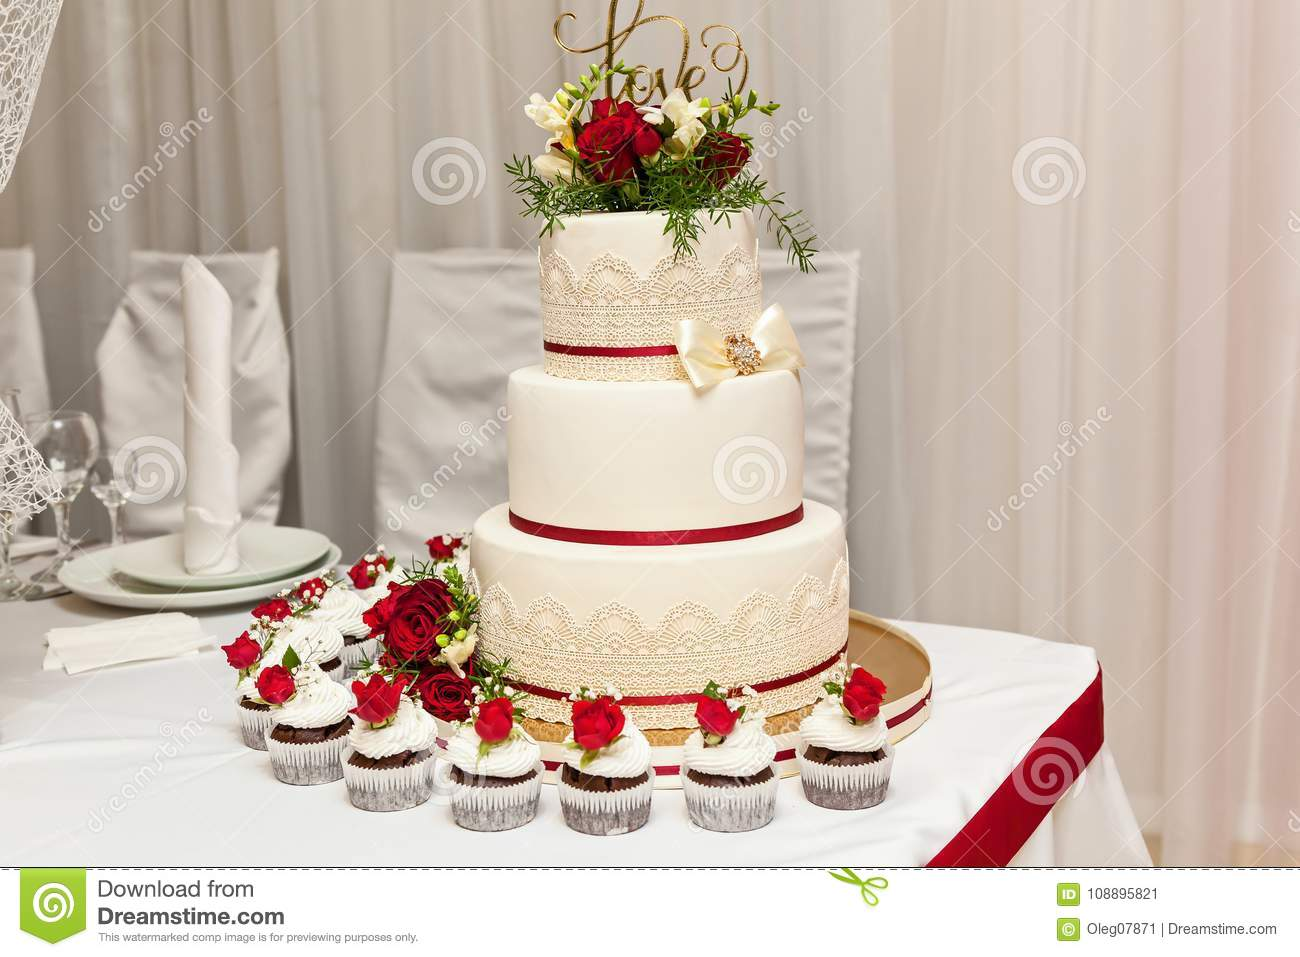 Wedding Cake With Red Roses Stock Image   Image of decor  party     Download Wedding Cake With Red Roses Stock Image   Image of decor  party   108895821